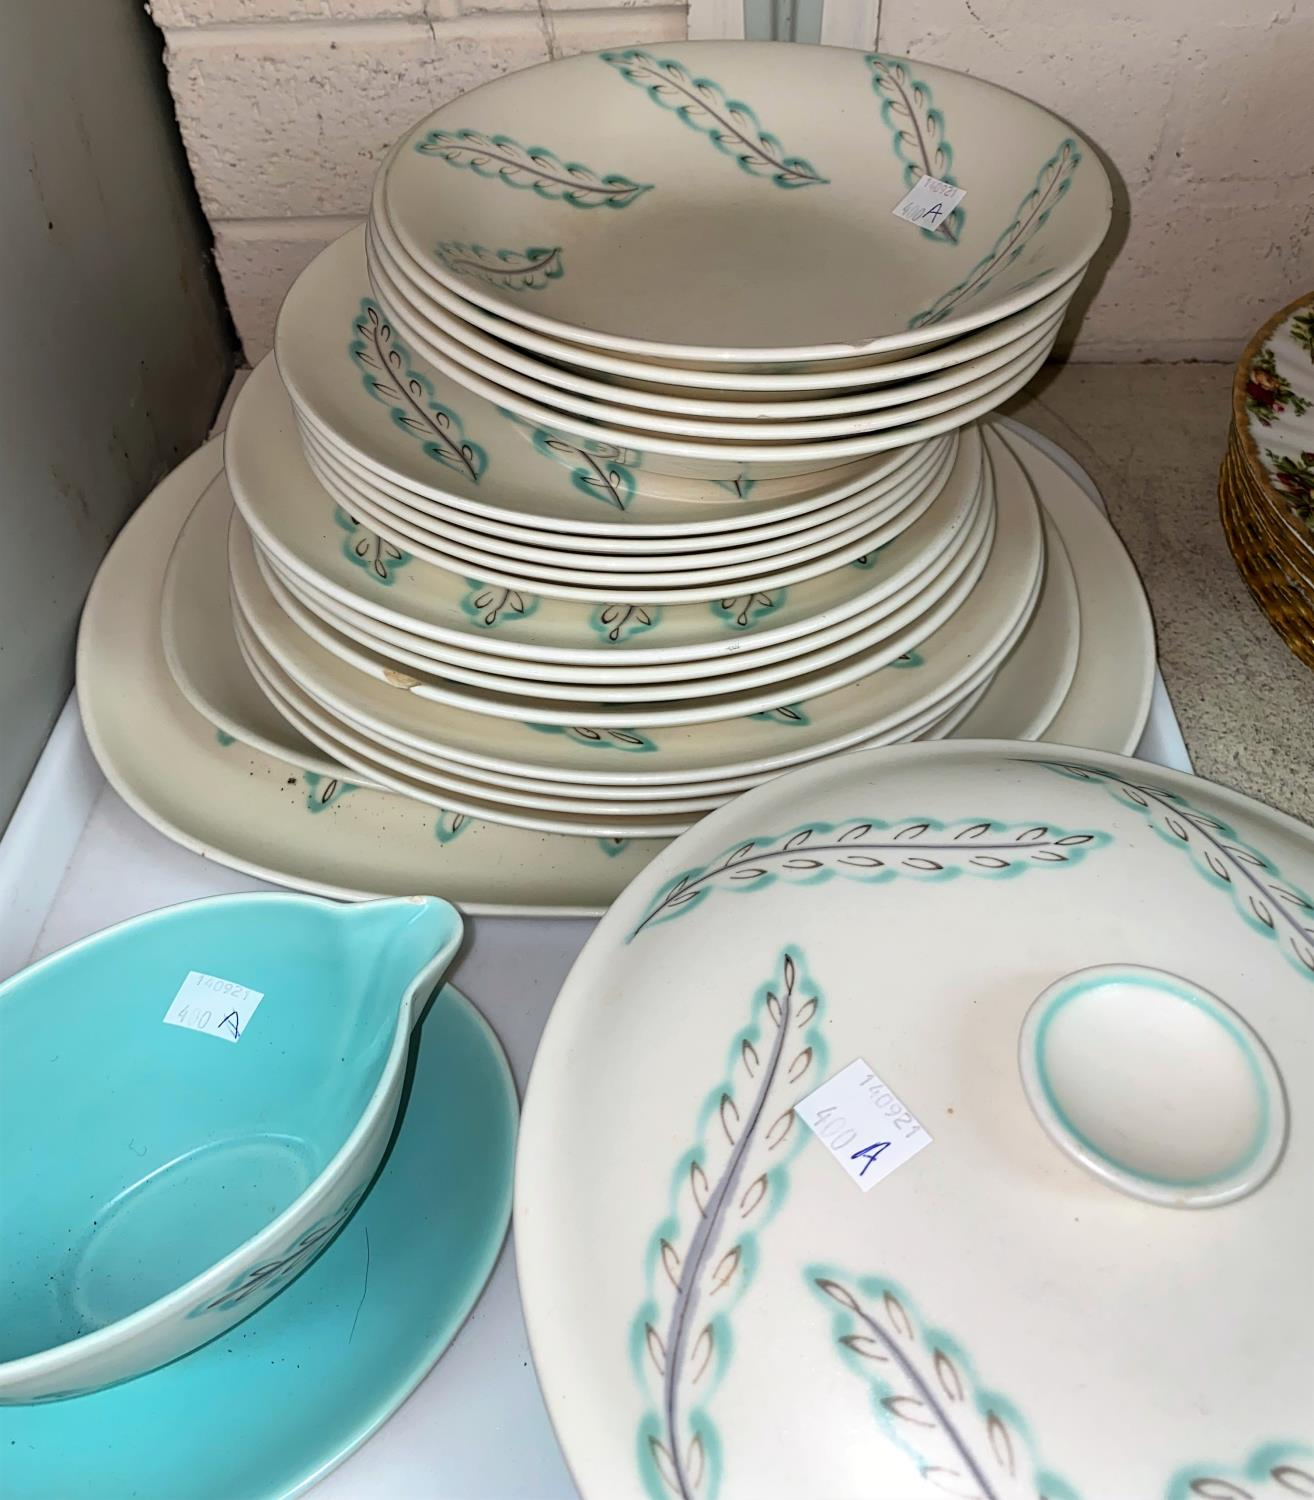 A Poole pottery part dinner service, 1950's hand painted free form design, 22 pieces - Image 2 of 2